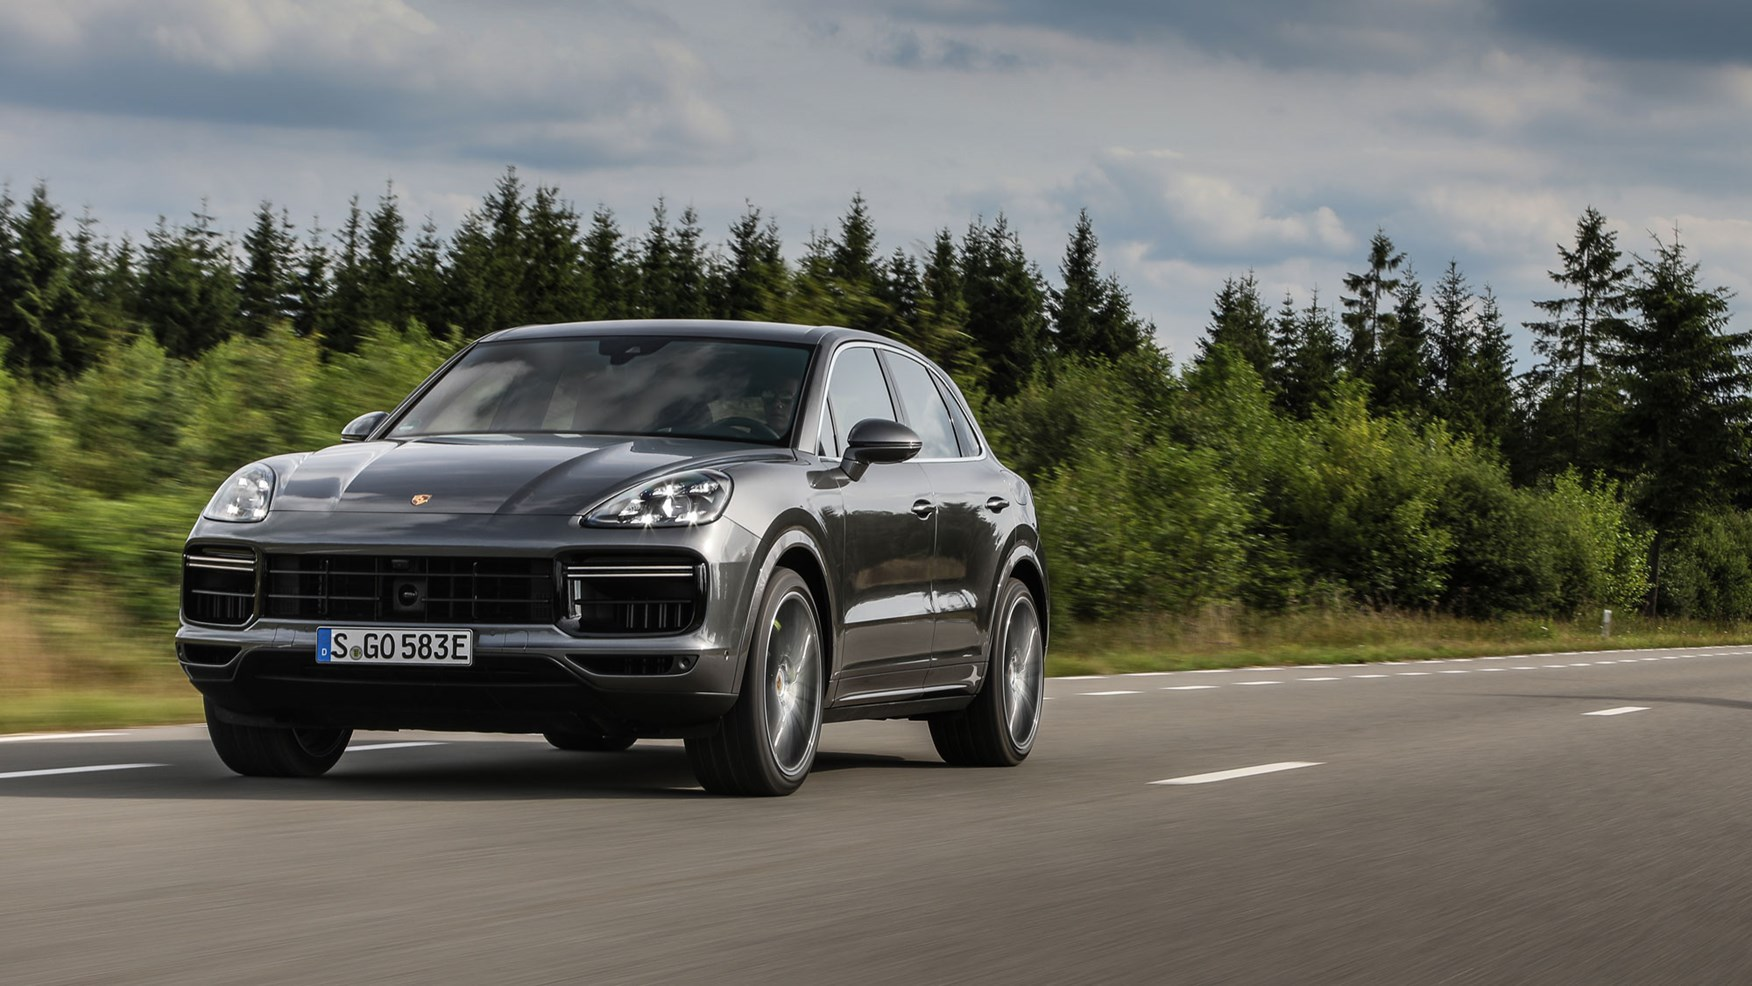 Porsche Cayenne Turbo S E Hybrid 2020 Review Car Magazine